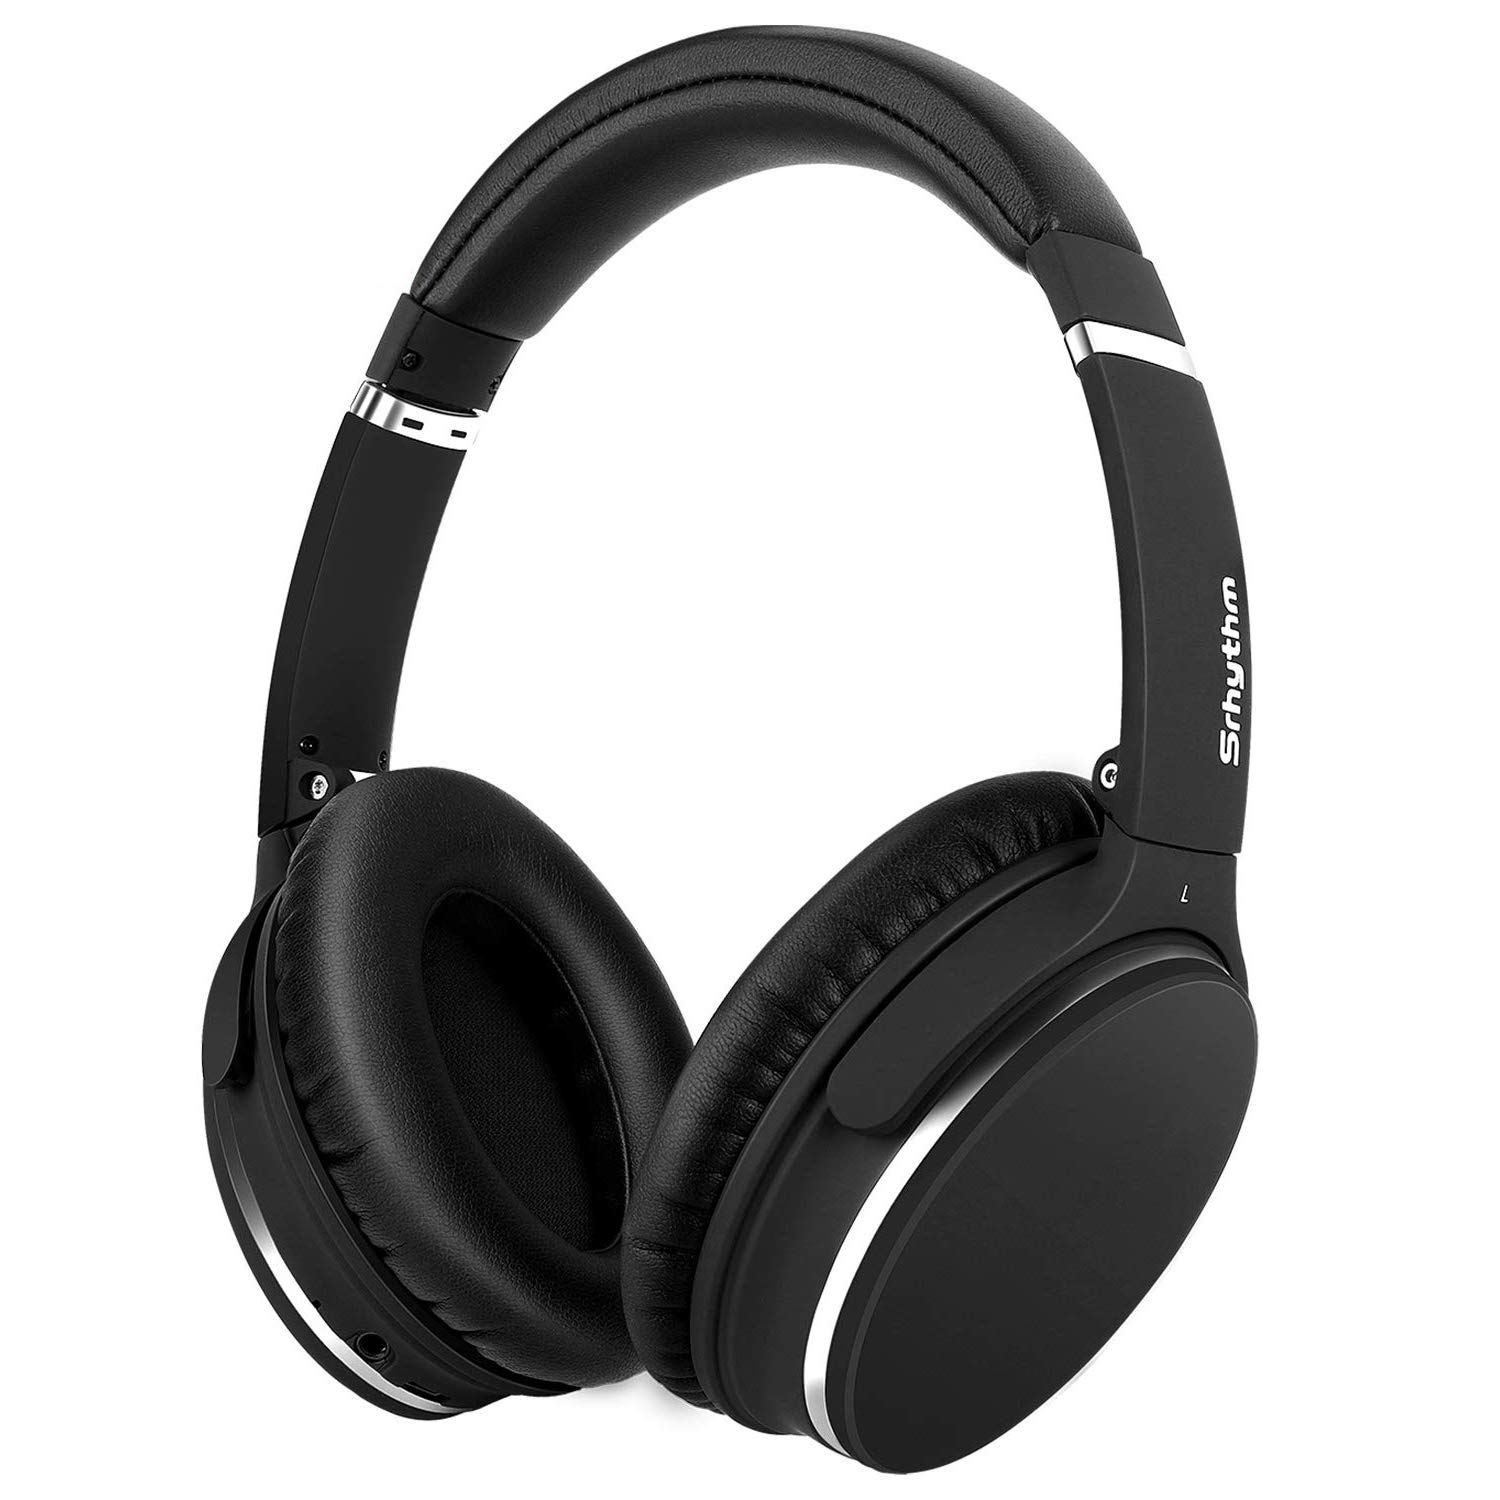 Noise Cancelling Headphones Real Over Ear,Wireless Lightweight Srhythm Durable Foldable Deep Bass Hi-Fi Stereo Bluetooth Headset with Mic and Wire for TV, PC, Cell Phone - Low Latency by Srhythm